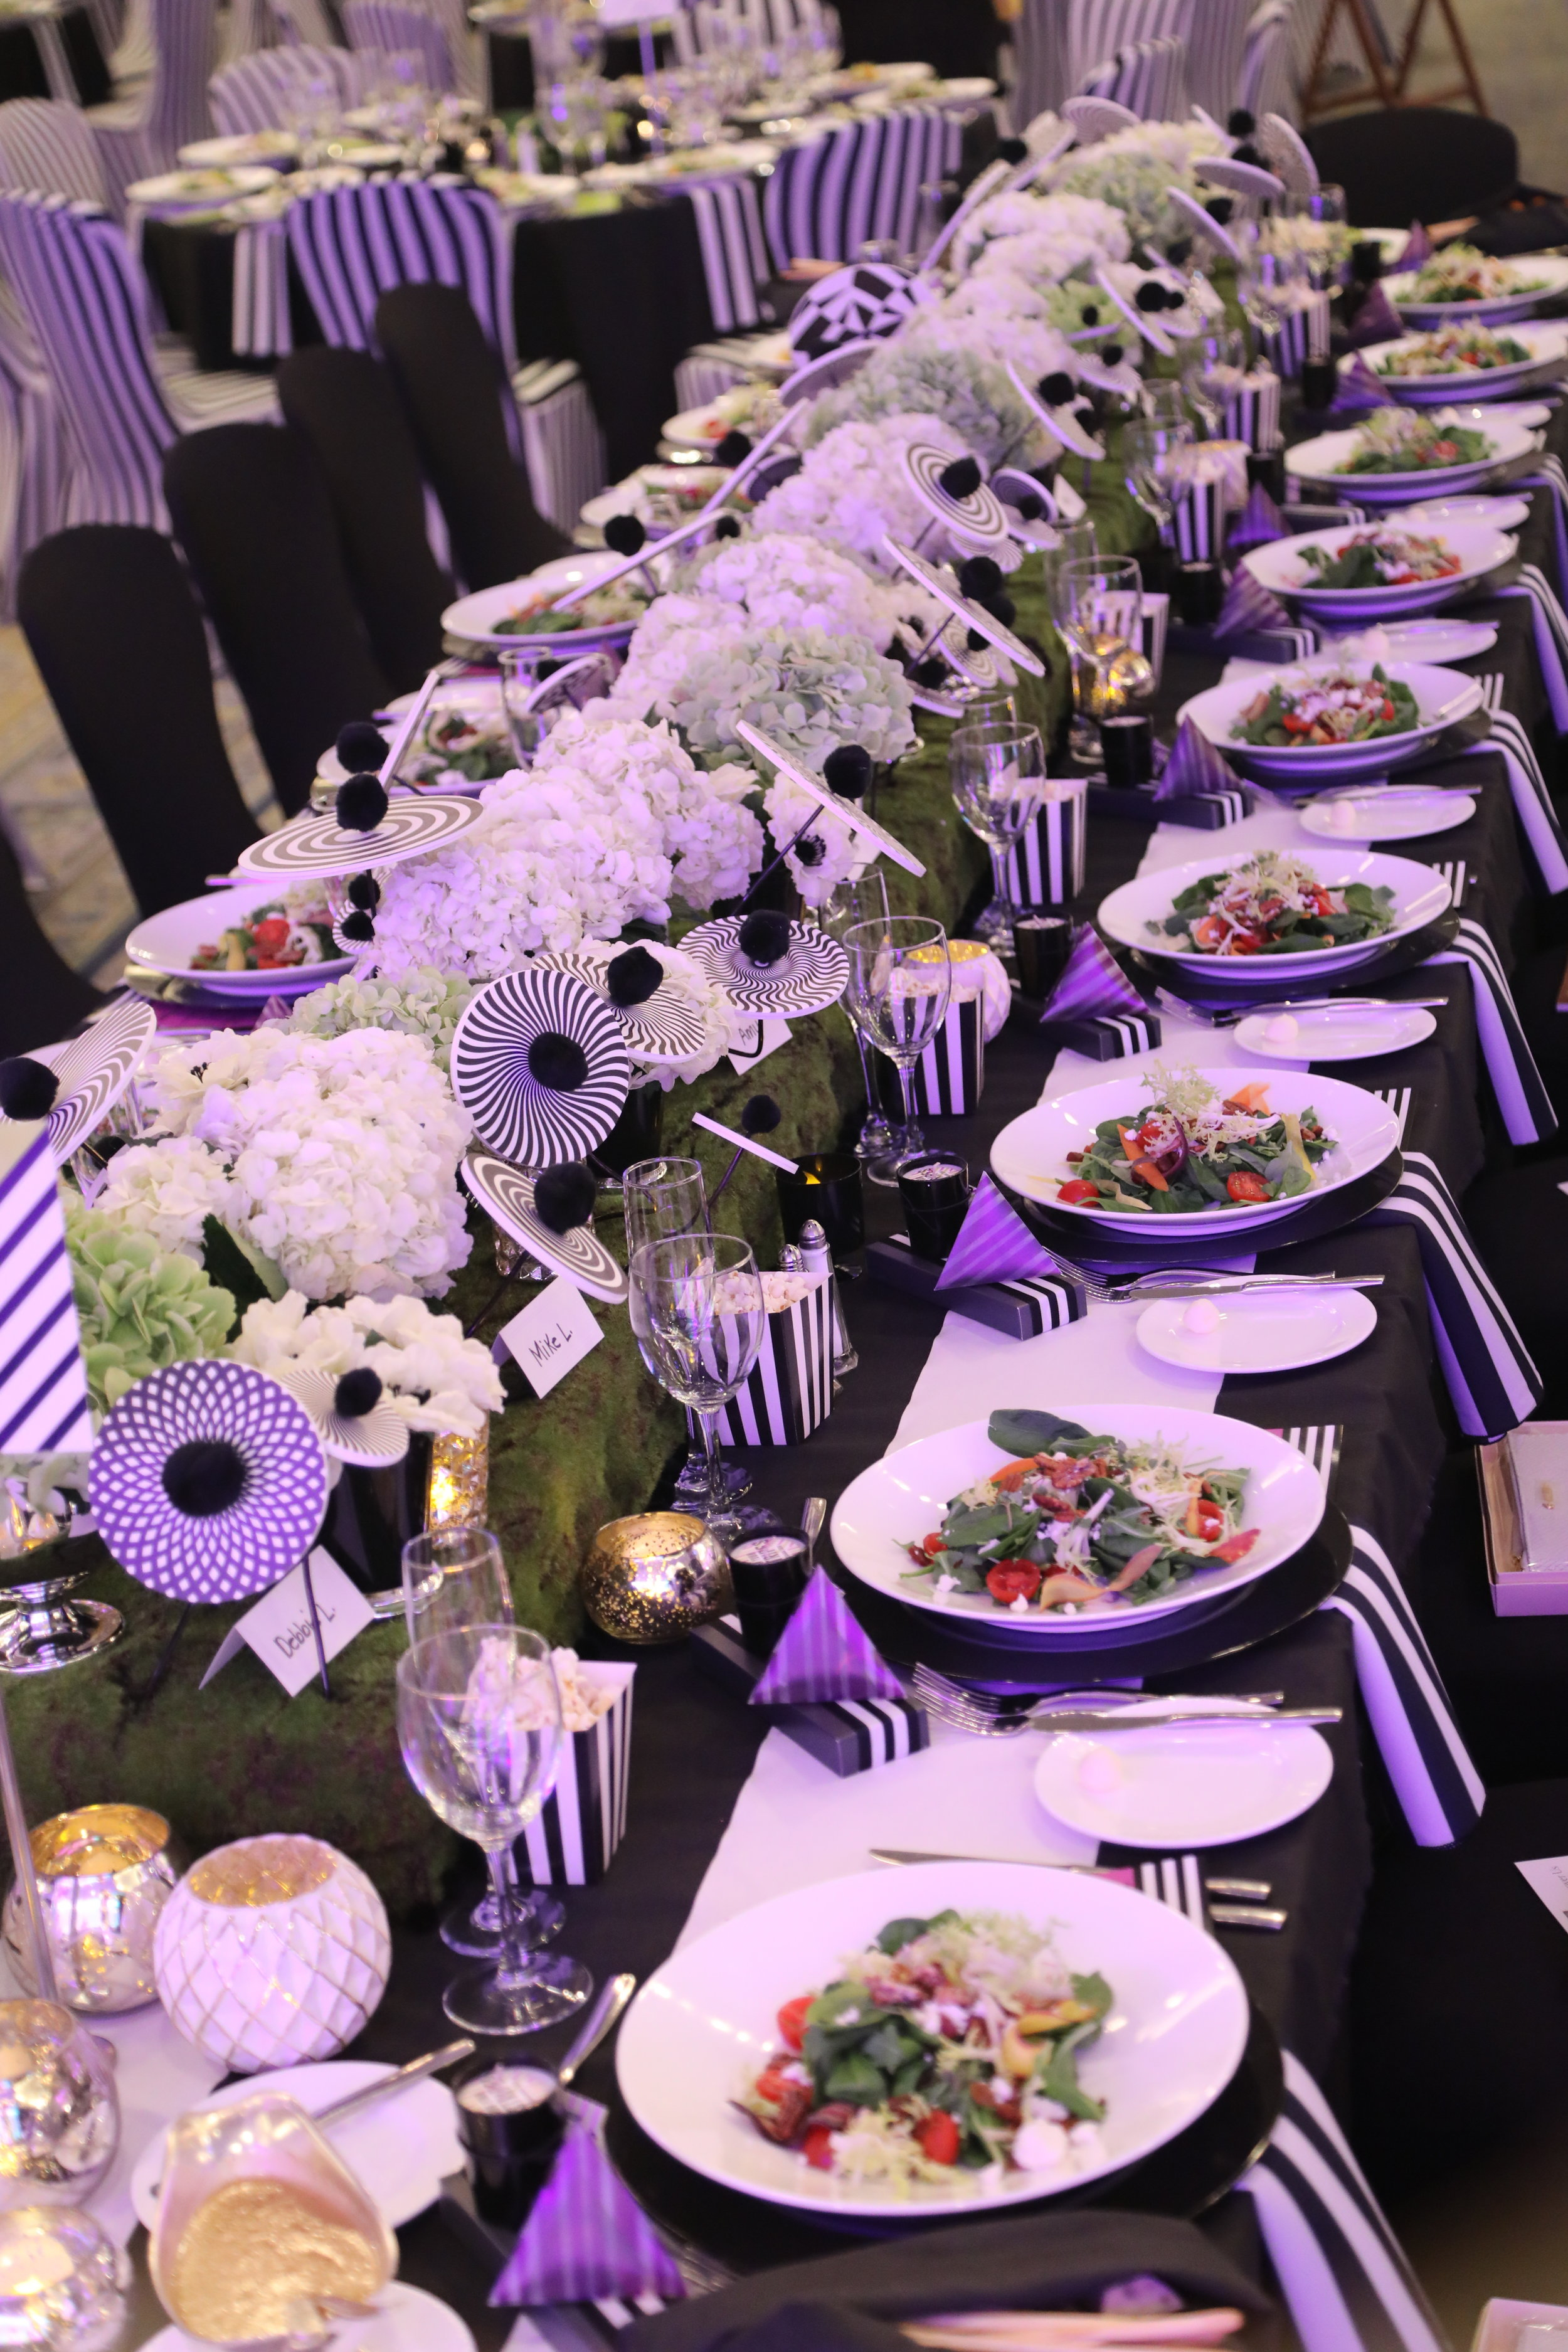 """""""Table One"""" at last year's COCAcabana celebration. Photo by Diane Anderson."""